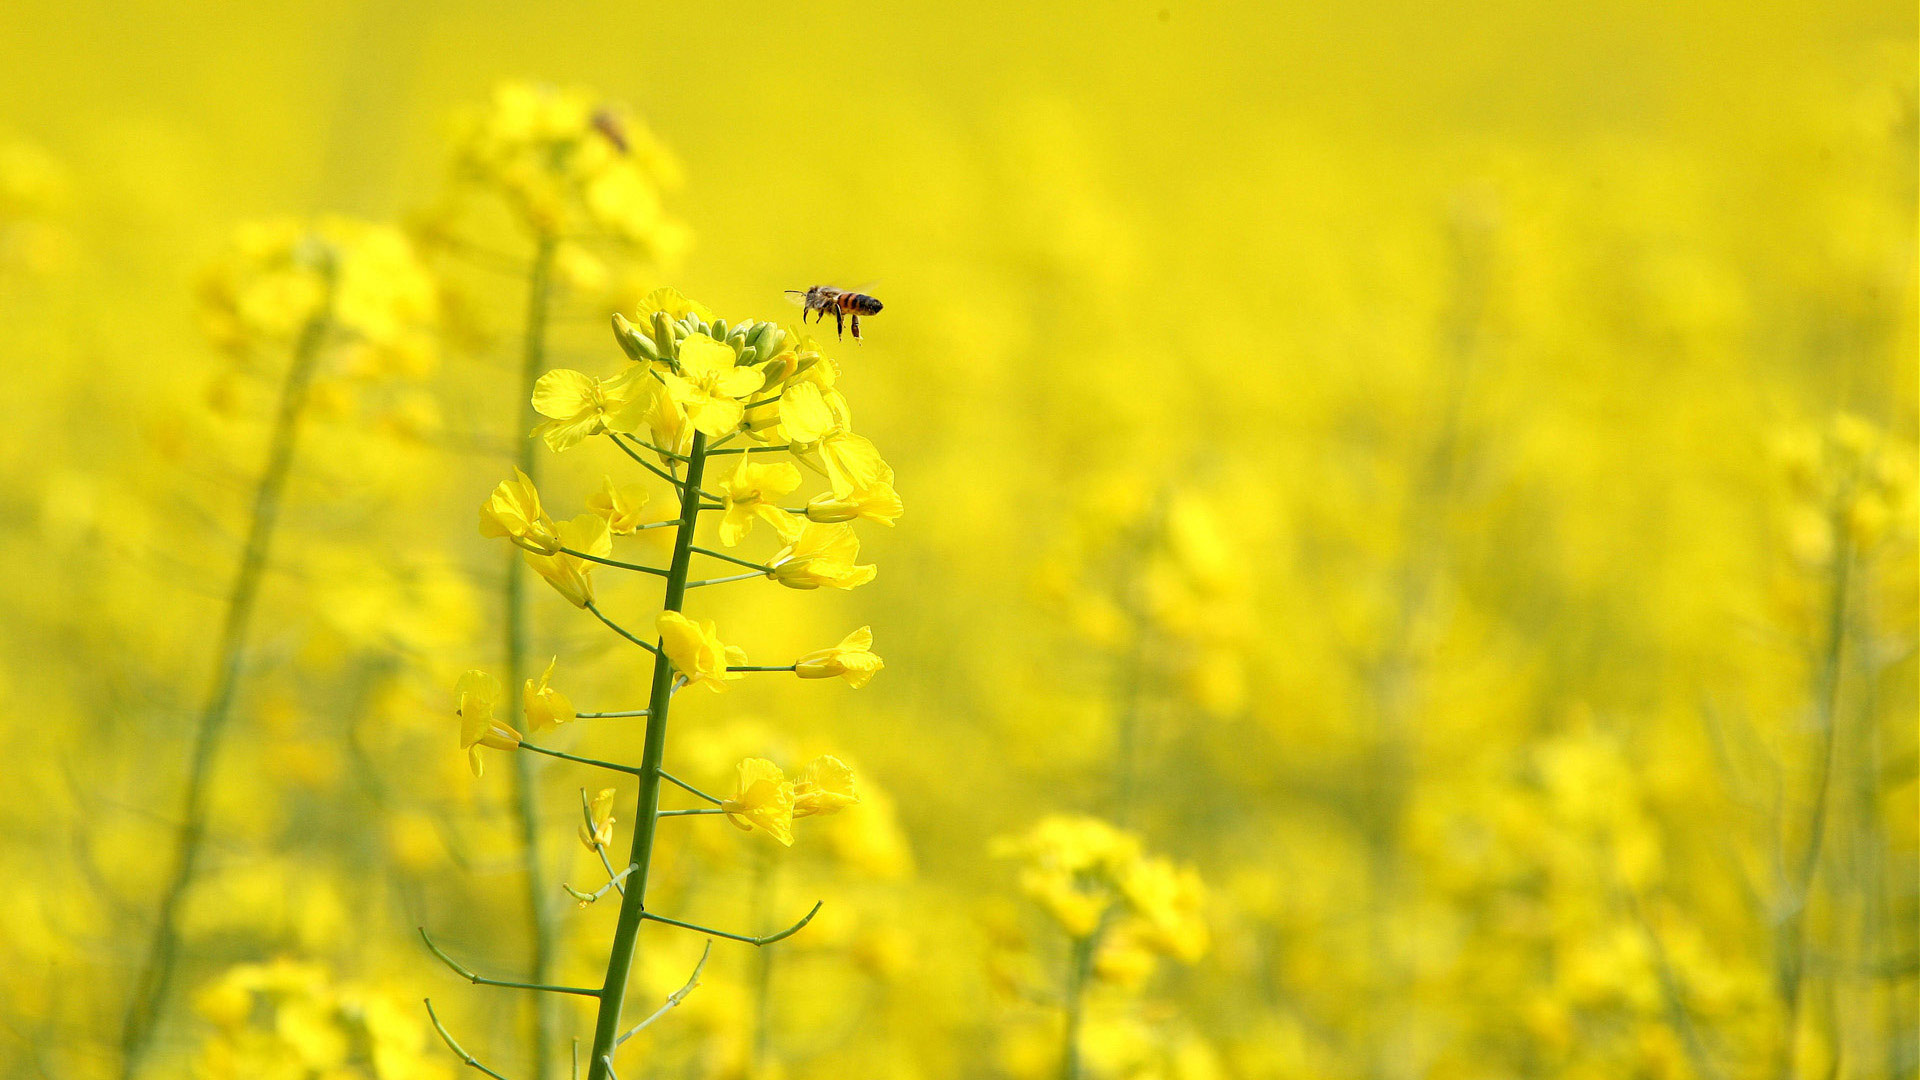 Complete Yellow Flowers Wallpapers HD Wallpapers 1920x1080